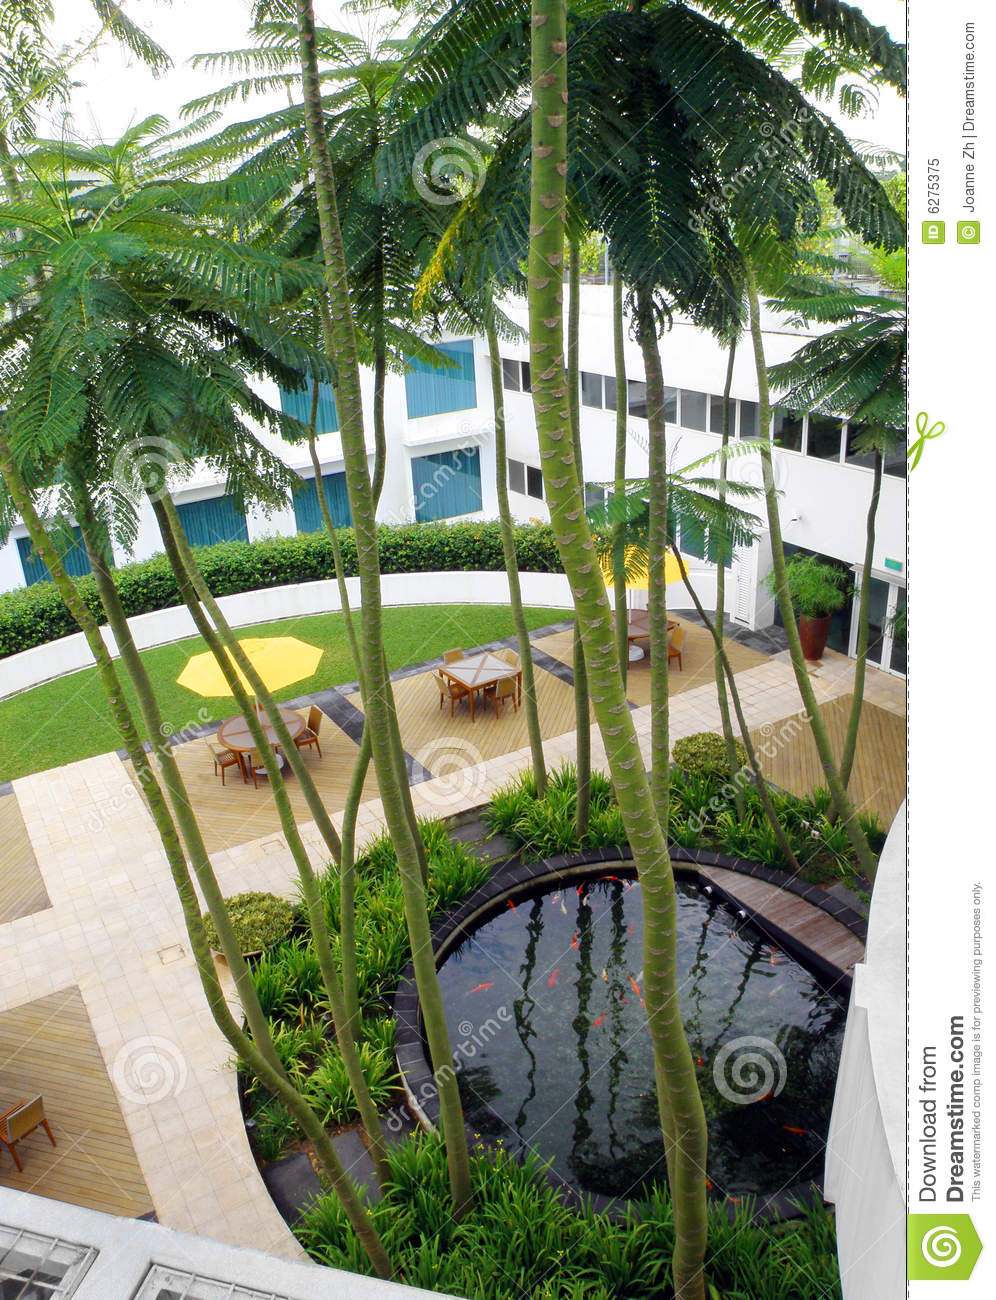 Roof Top Garden Design Royalty Free Stock Photo - Image: 6275375